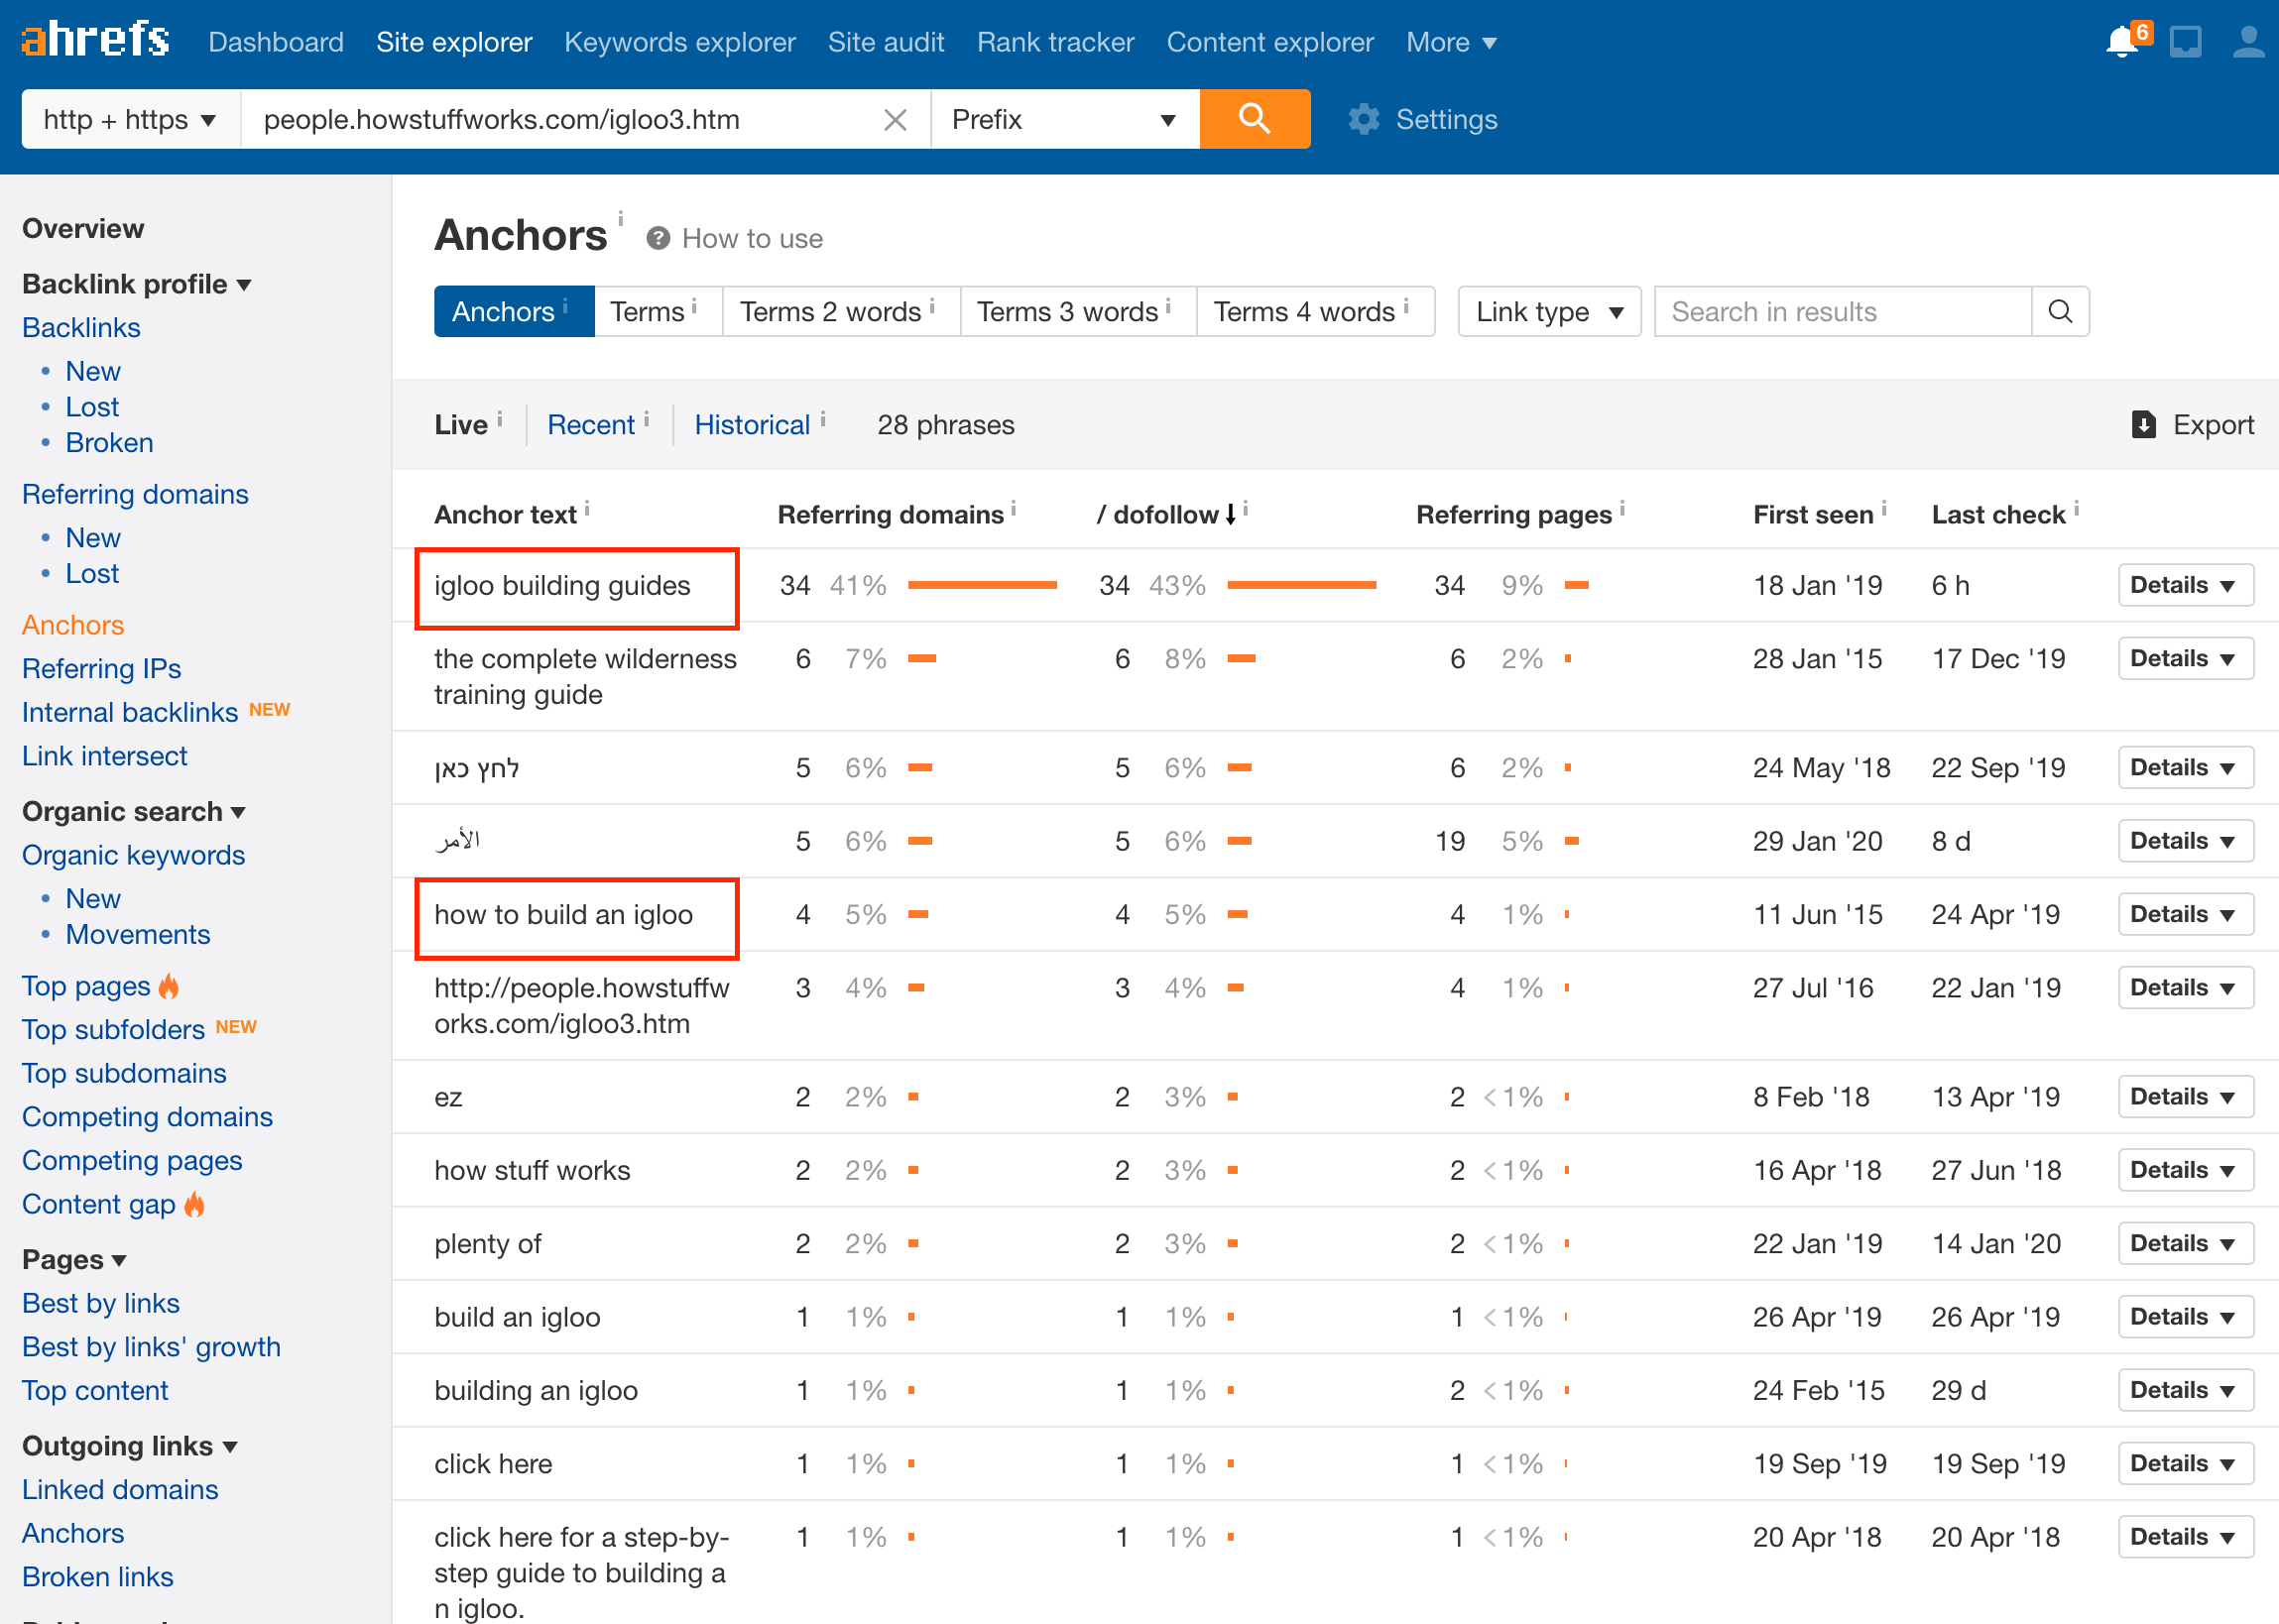 ahrefs screenshot showing anchor text